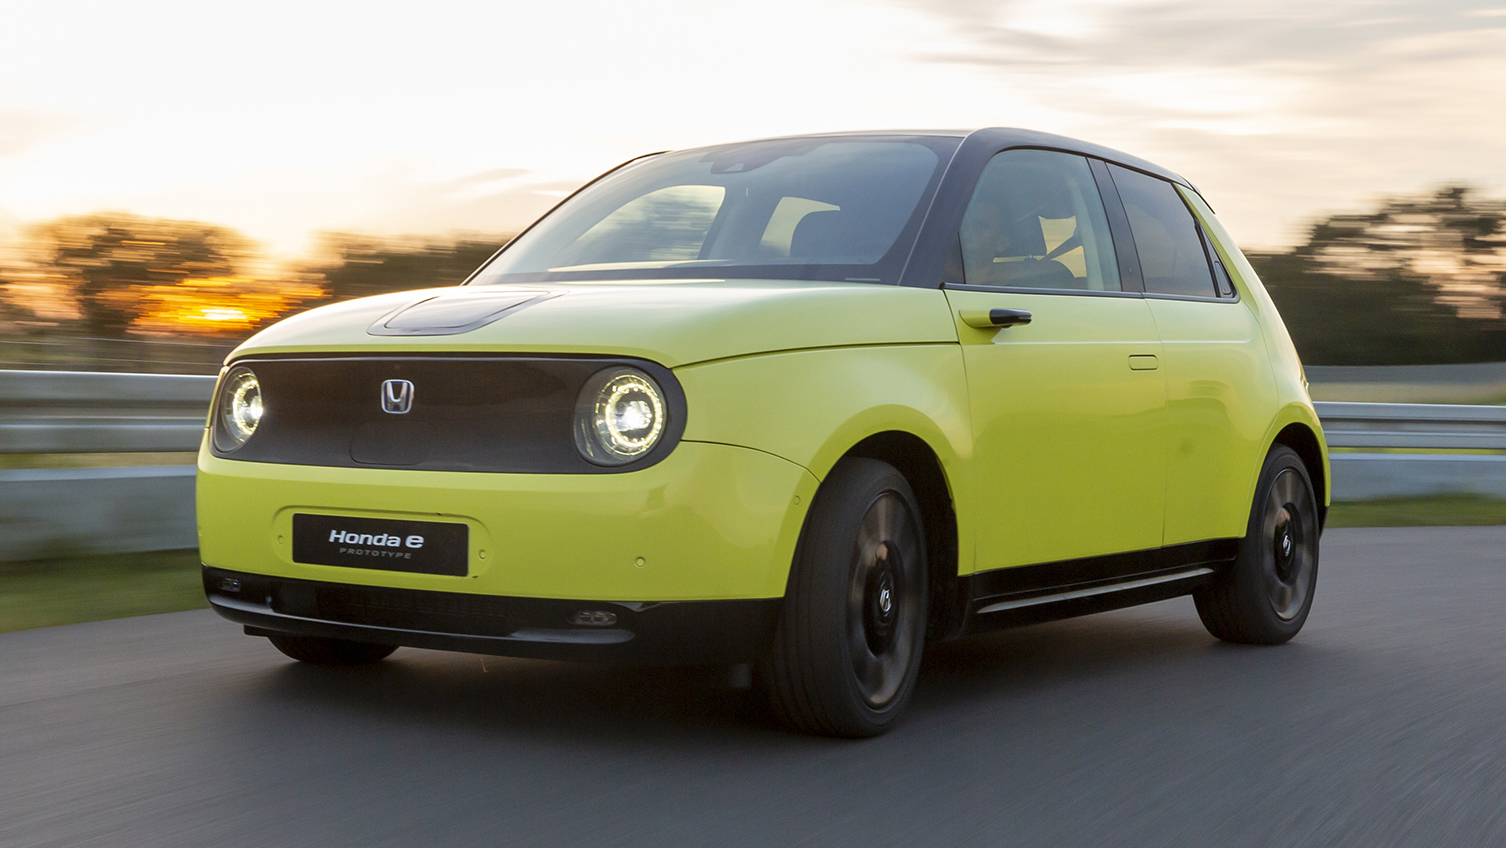 Honda e Prototype review: first test of Honda's little electric car